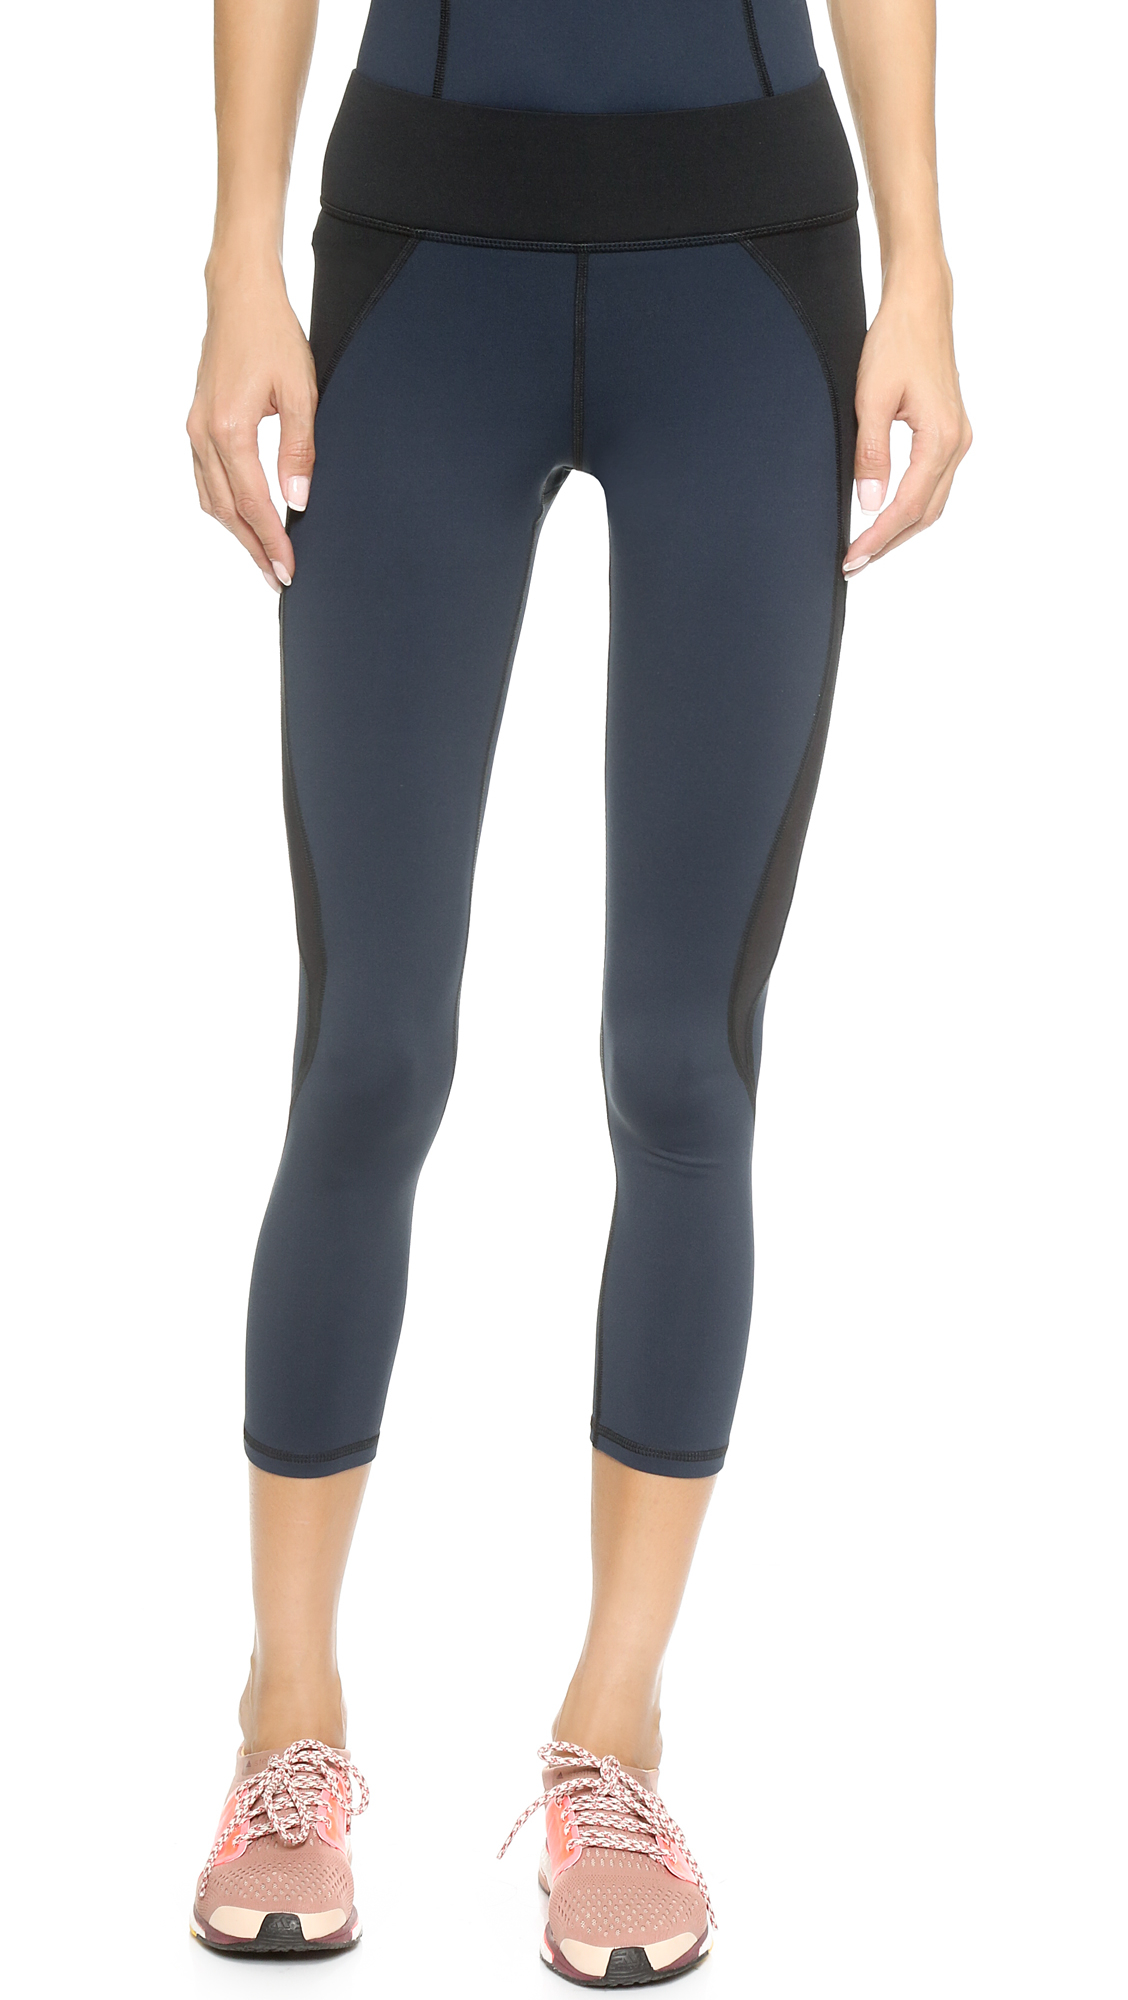 Navy Blue Cropped Leggings - Trendy Clothes